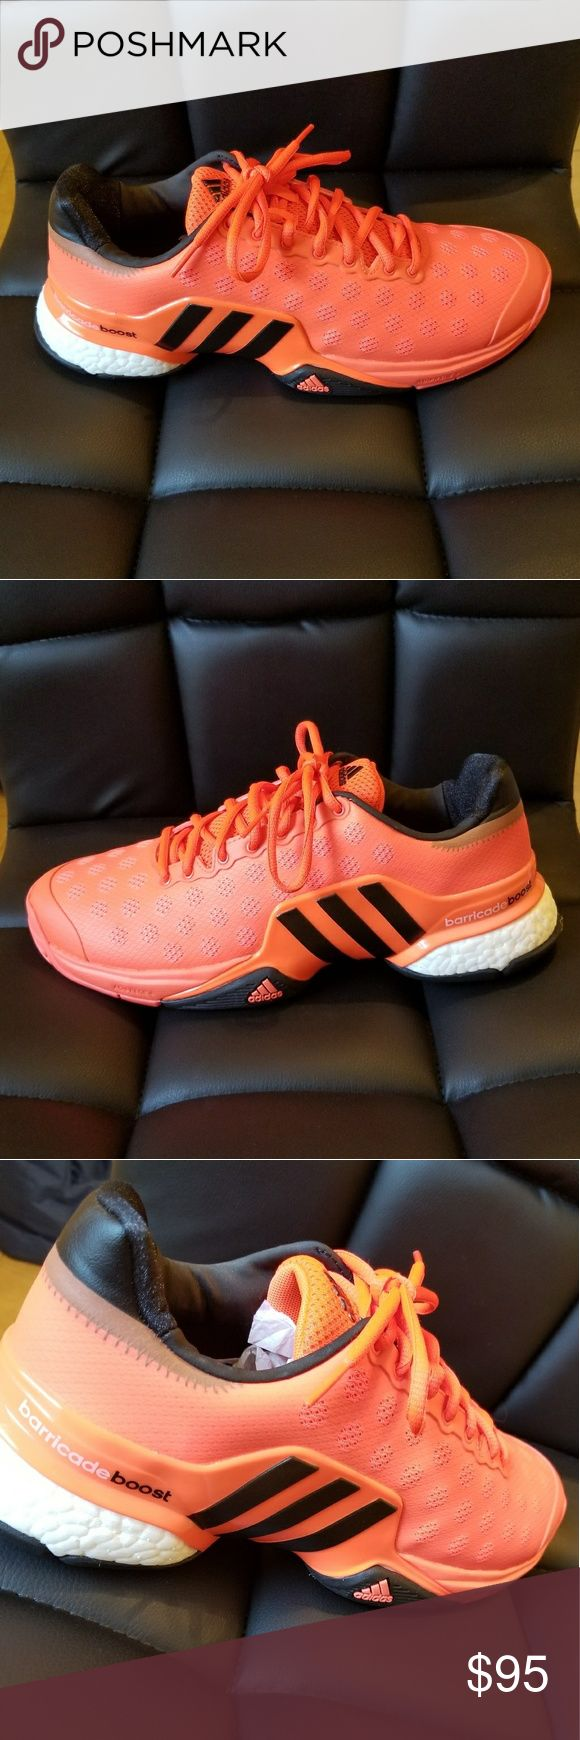 Adidas Barricade 2015 Boost These were a gift but I have never worn them. They're new Adidas tennis shoes! Bright orange color. adidas Shoes Athletic Shoes